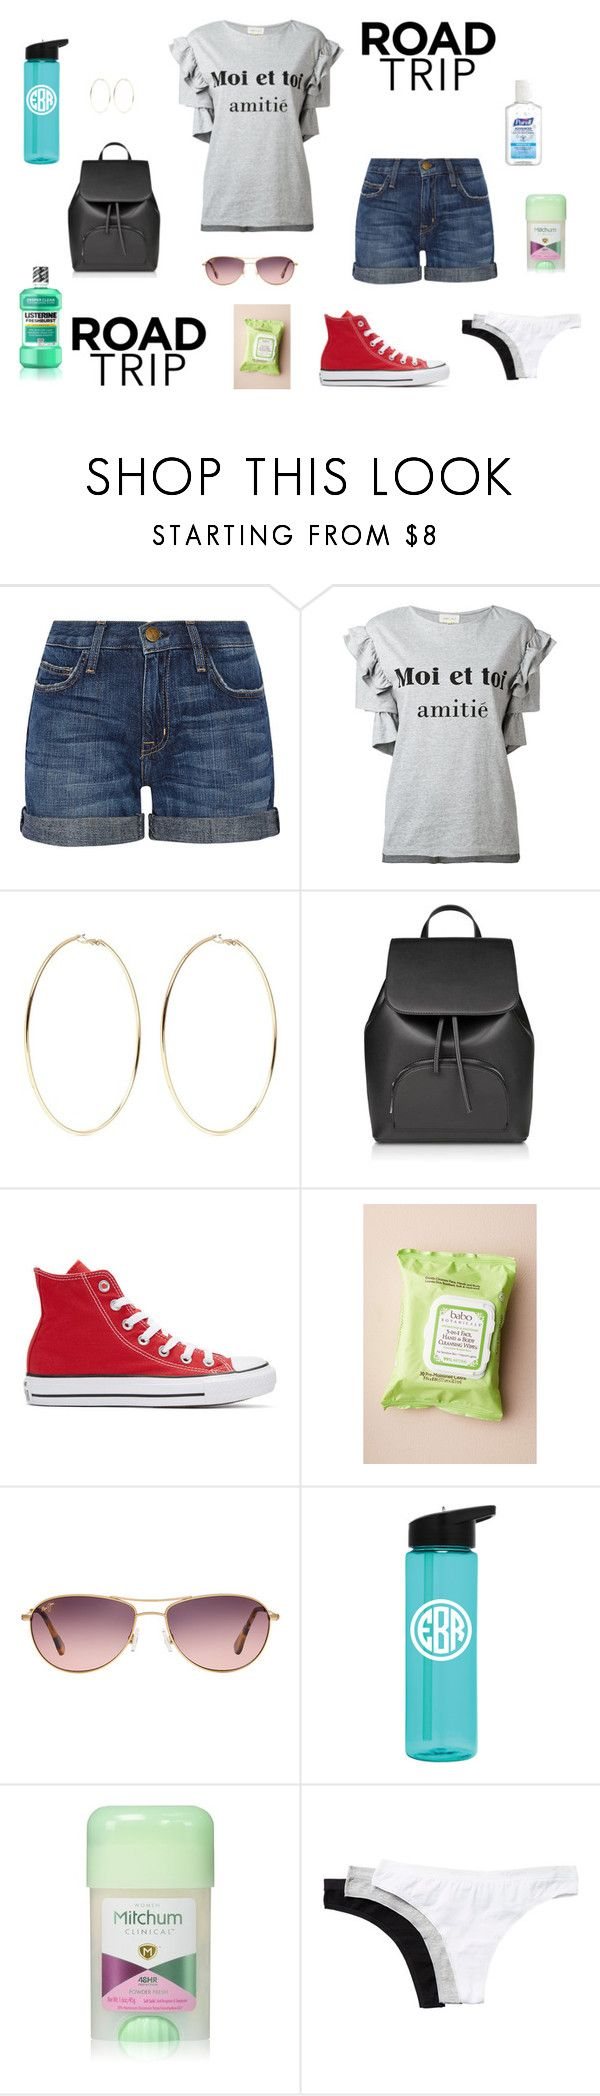 """""""Road Trip"""" by edith-a-giles ❤ liked on Polyvore featuring Current/Elliott, Steve J & Yoni P, Kenneth Jay Lane, Converse, Babo Botanicals, Maui Jim, Mitchum and Columbia"""